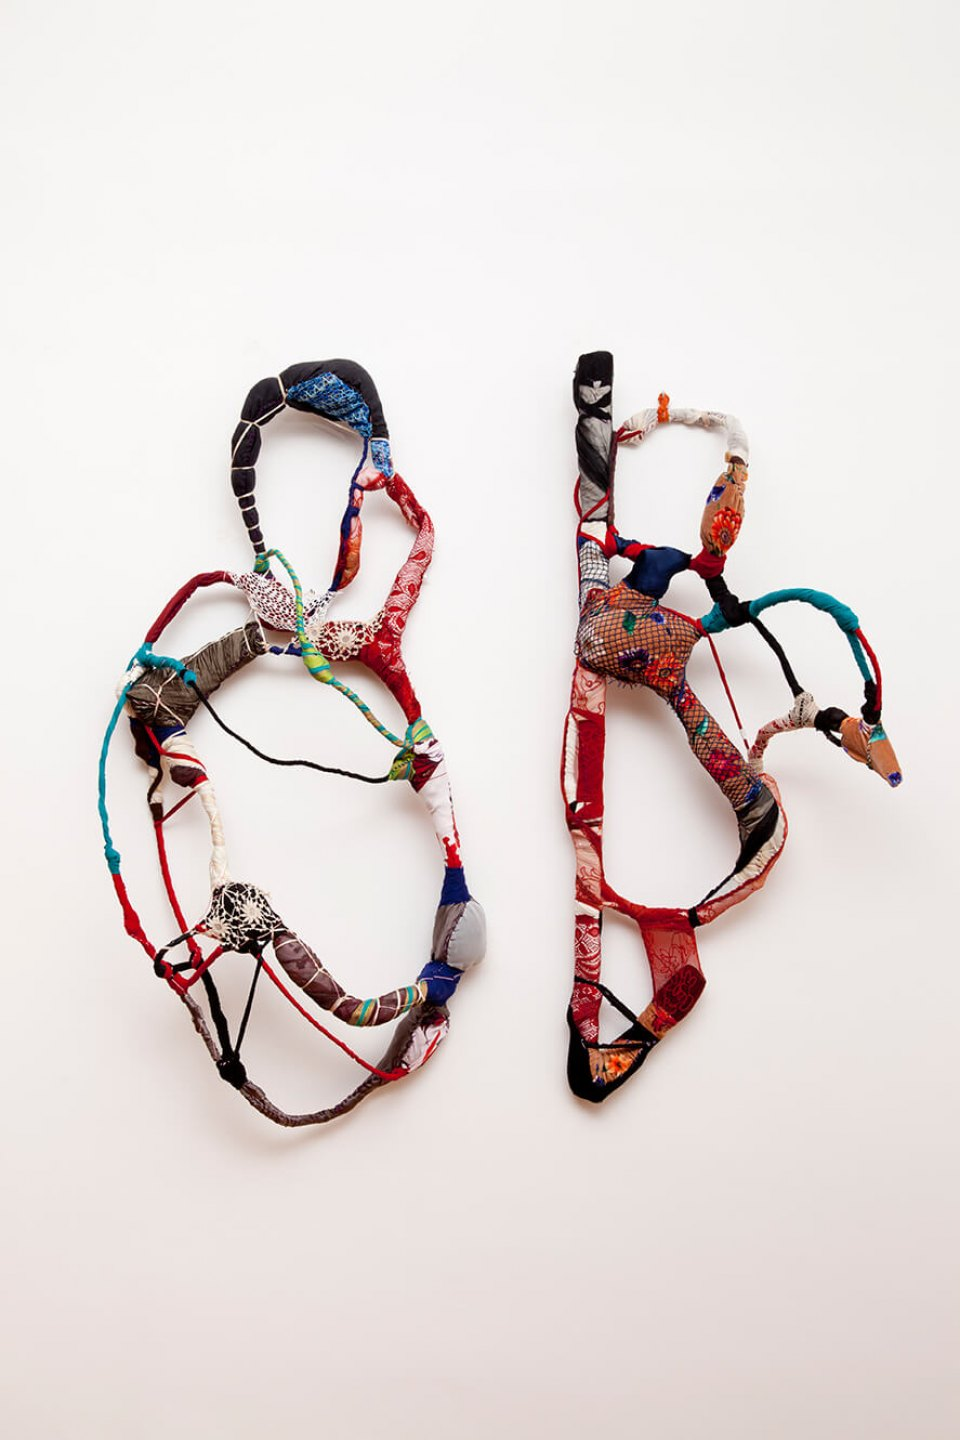 Sonia Gomes,<em>untitled, from Torção series</em>,2012, stitching, bindings, different fabrics and laces on wire, 125×130×28 cm - Mendes Wood DM